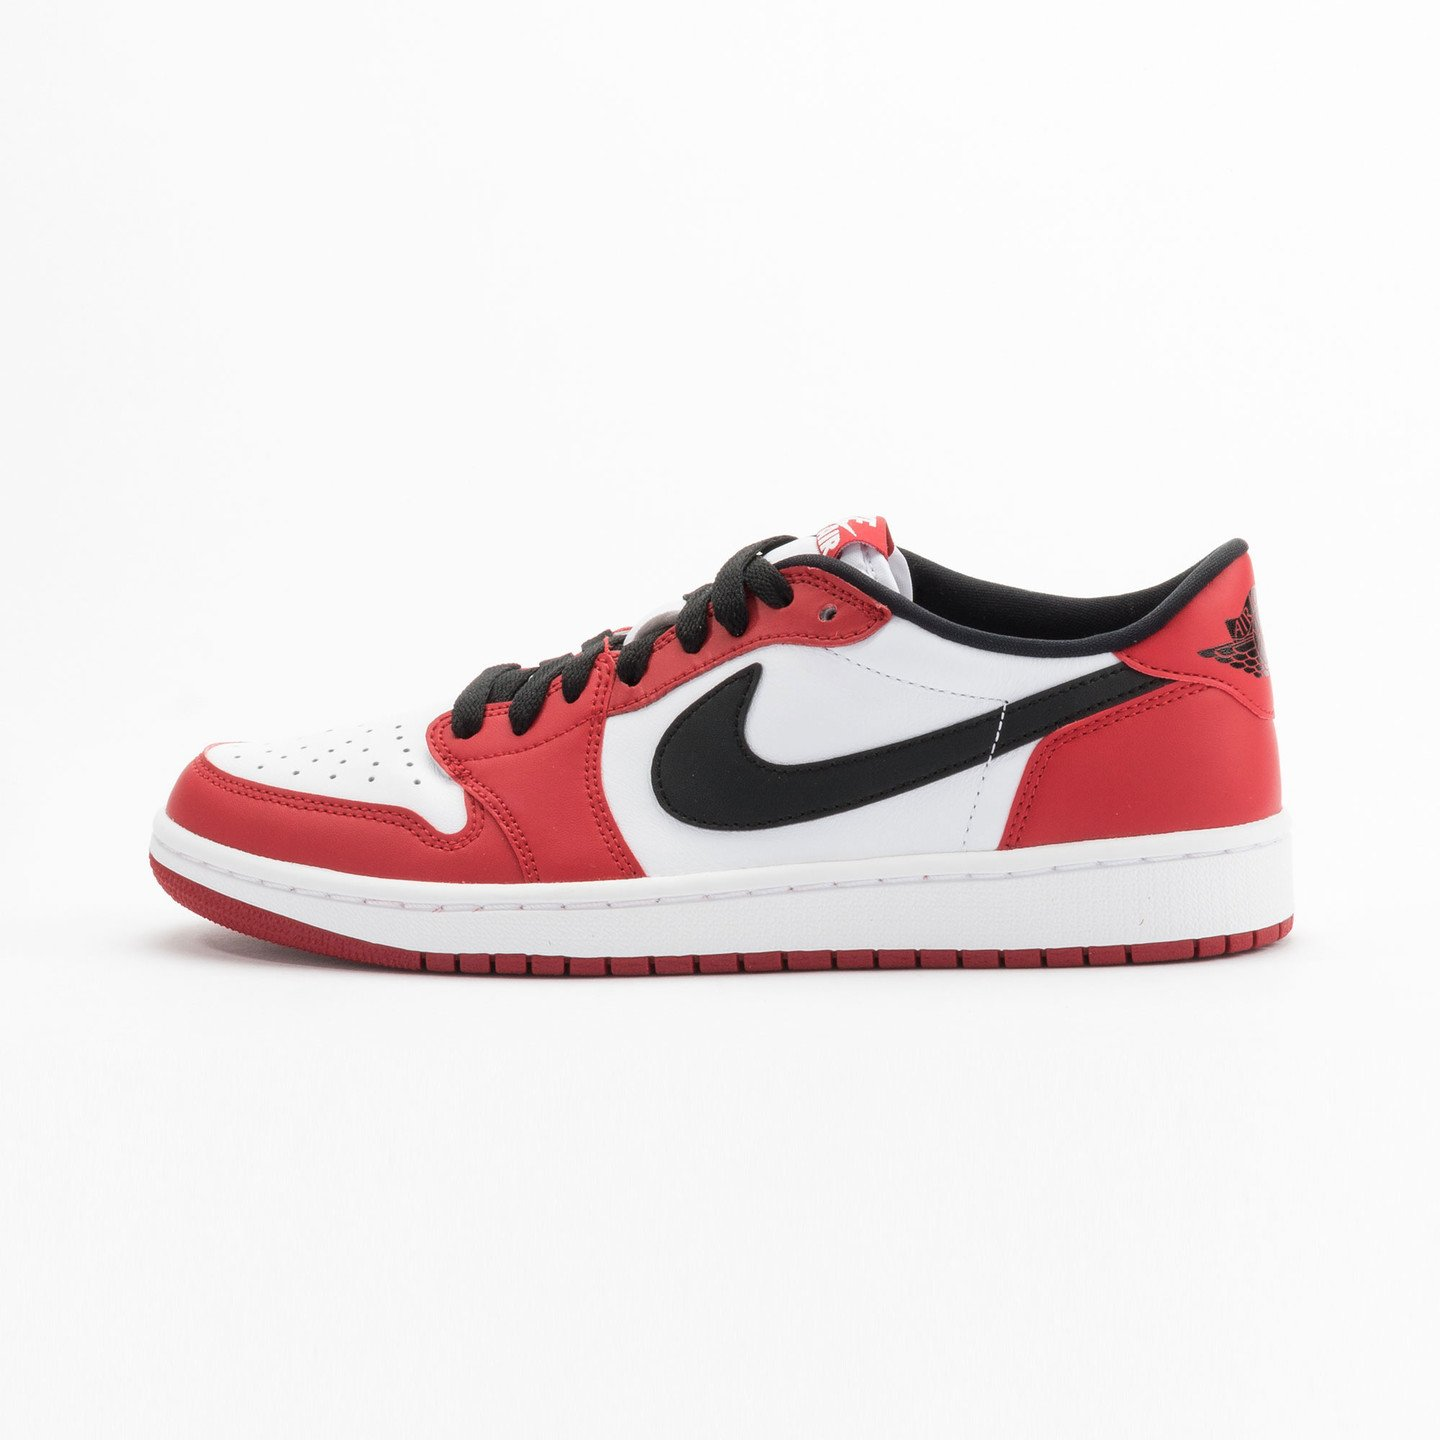 Nike Air Jordan 1 Retro Low OG 'Chicago' Varsity Red / Black / White 705329-600-44.5